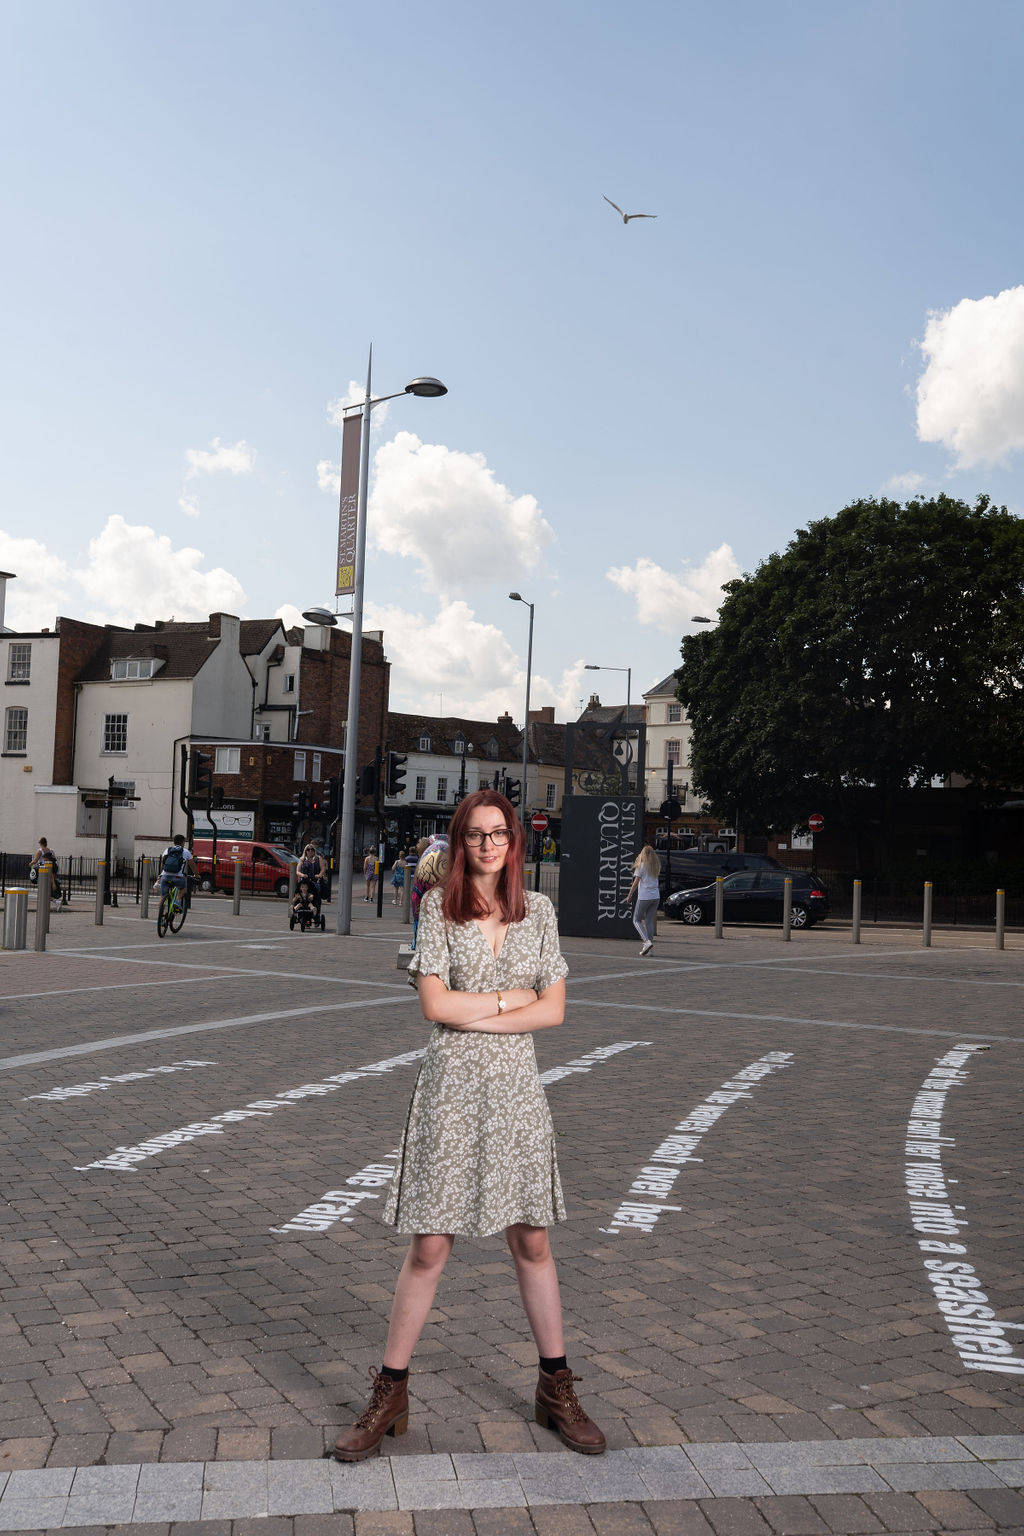 Image Description: A young woman stands in the center of the fram looking straight into the camera, she is wearing a light green patterned summer dress, dark boots, glasses and her hair is down. She stands with her feet slightly apart and her arms folded, looking very powerful. She is standing in a square and behind her on the pavement we can see her poem that has been stencilled onto the street in large white text. In the background we can see the blue sky, a sea gull flying a bove and buildings and pedestrians in the distance.